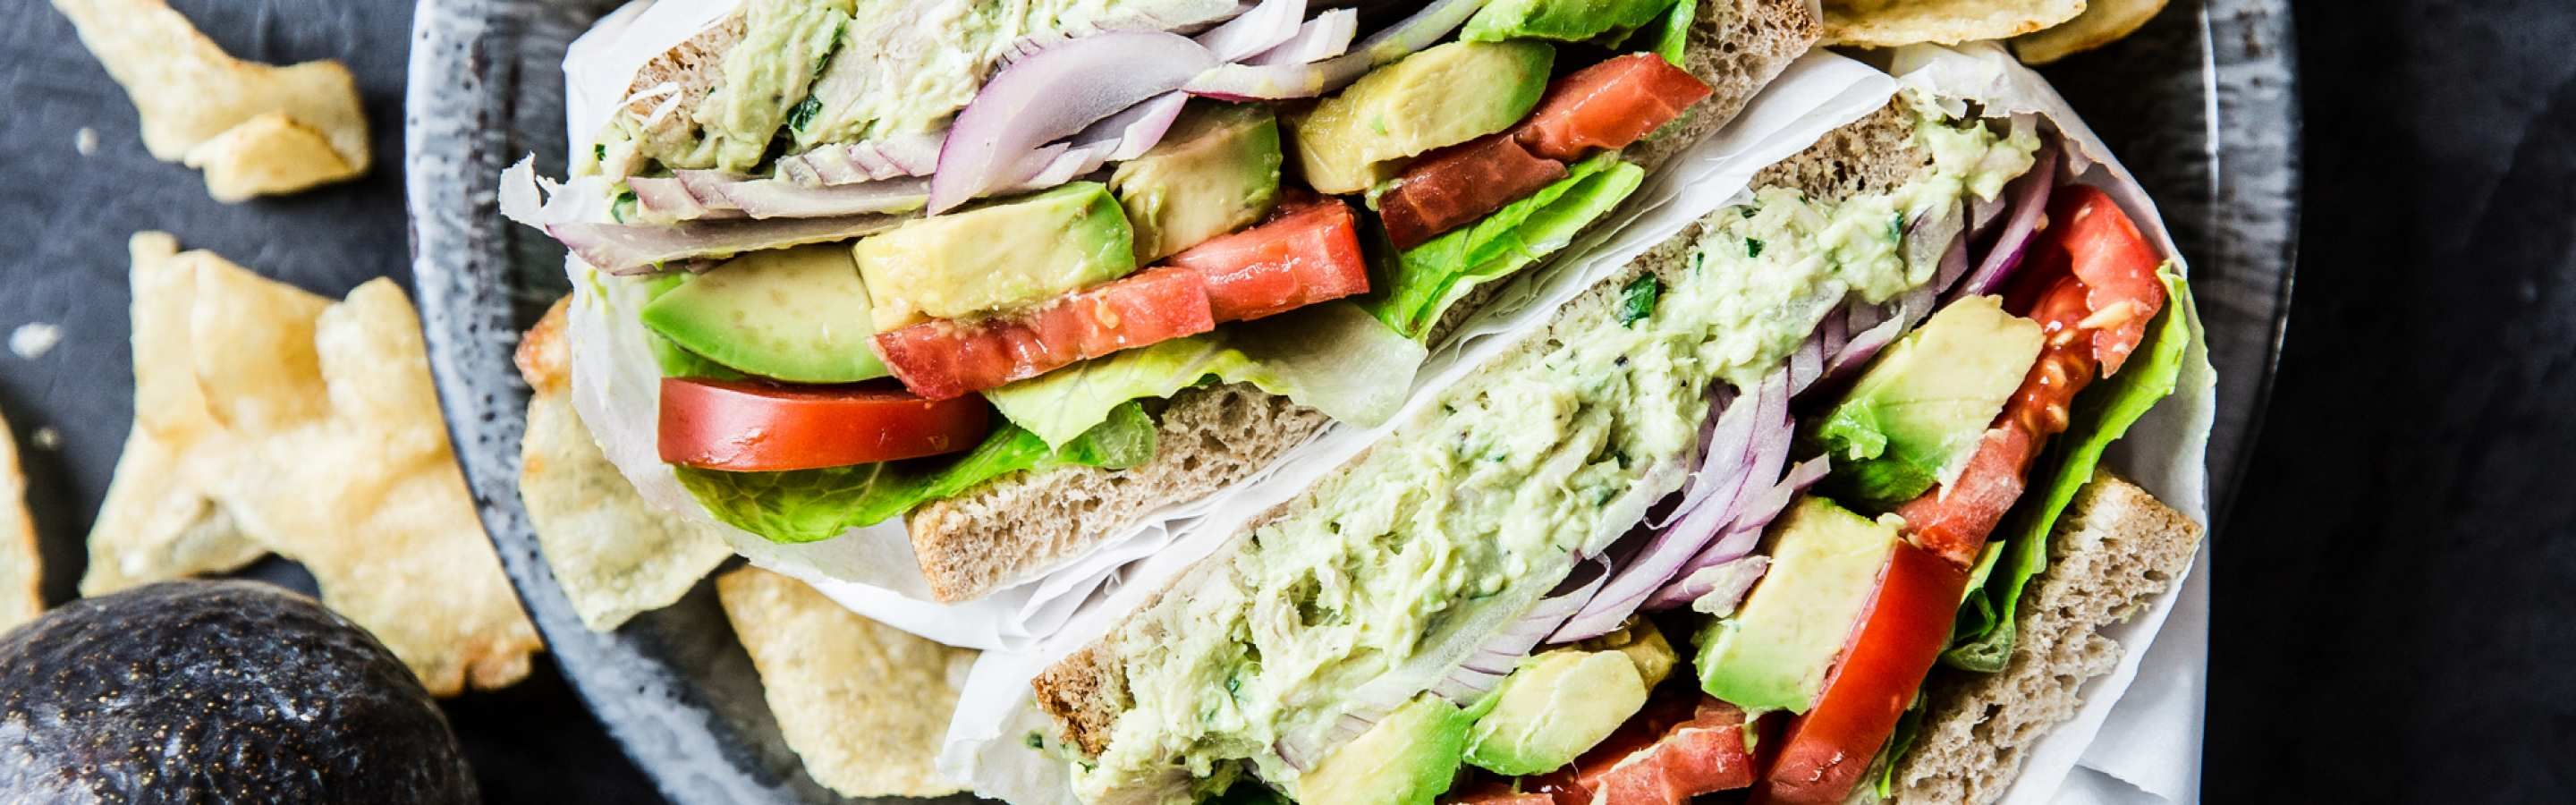 Chicken salad avocado sandwich in 2020 with images